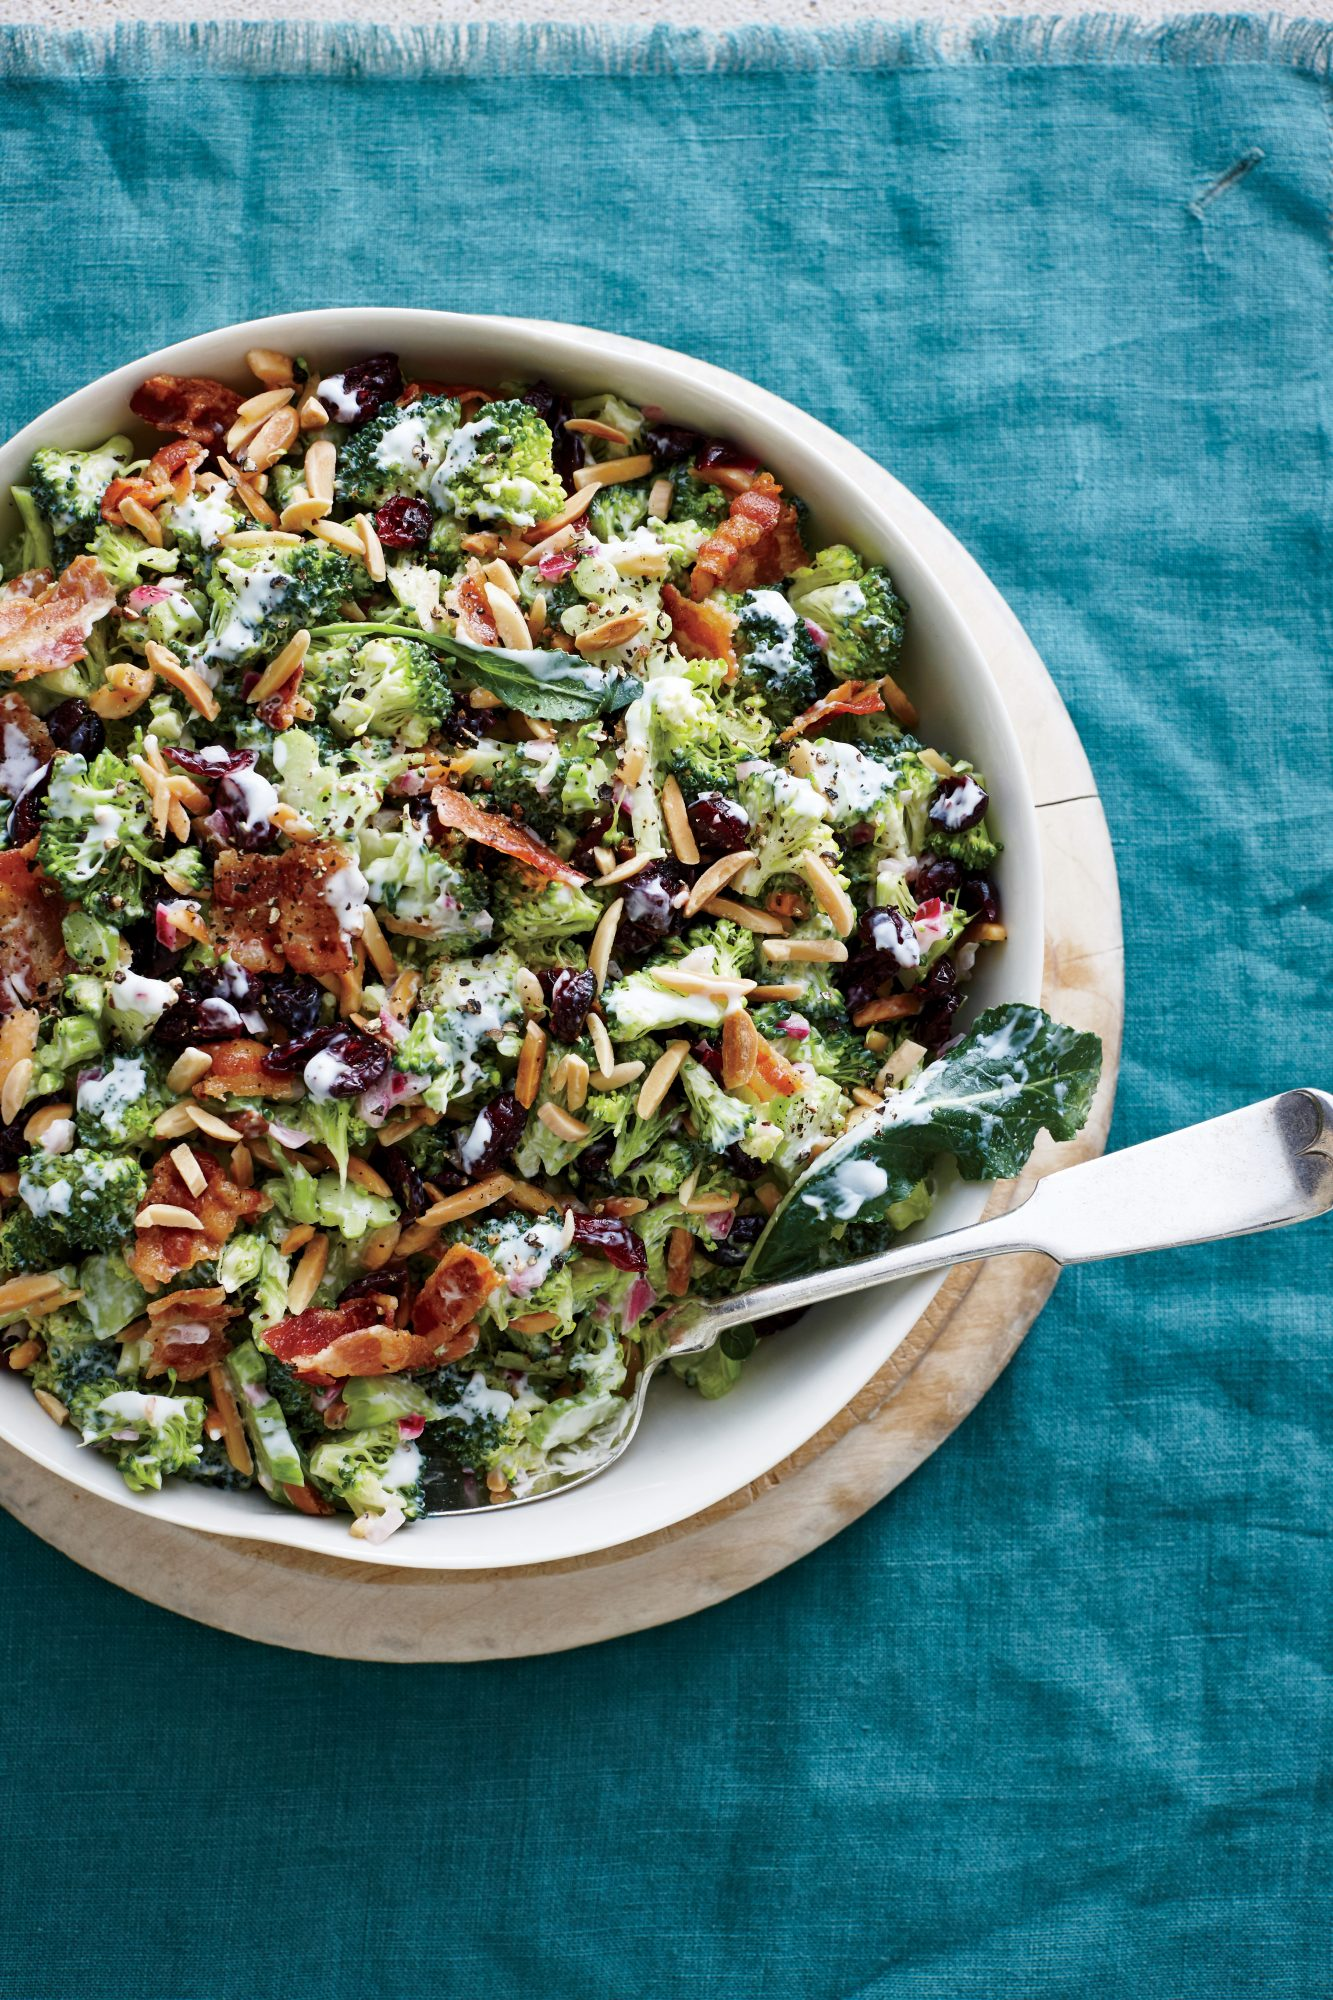 Broccoli Salad: An Old Favorite! (Easy Reader Recipes Book 14)